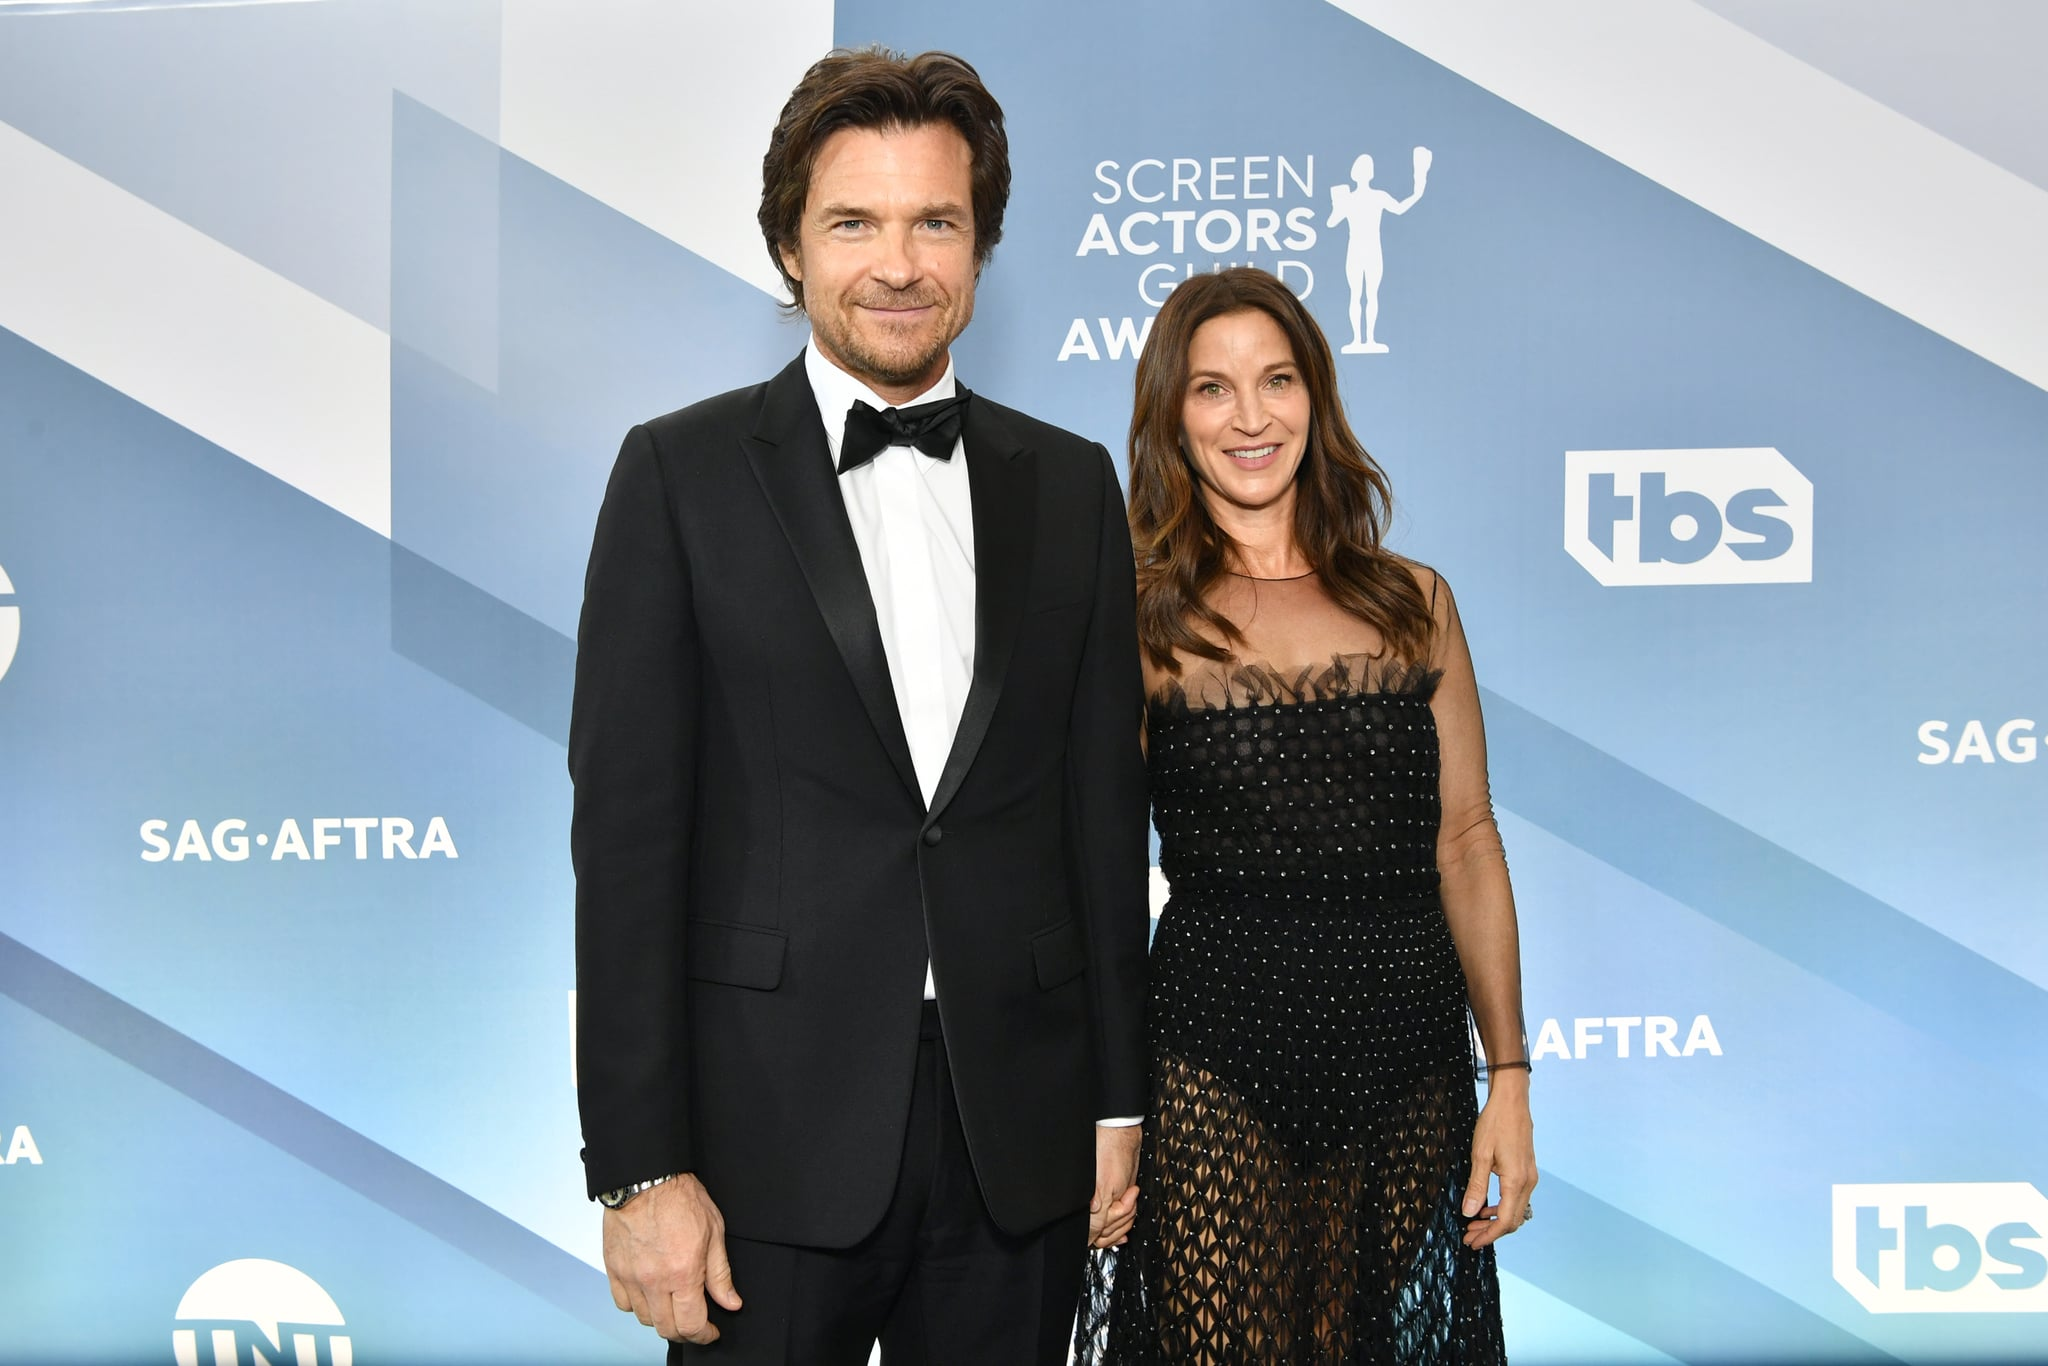 LOS ANGELES, CALIFORNIA - JANUARY 19:  (L-R) Jason Bateman and Amanda Anka attend the 26th Annual Screen Actors Guild Awards at The Shrine Auditorium on January 19, 2020 in Los Angeles, California. (Photo by Amy Sussman/WireImage)